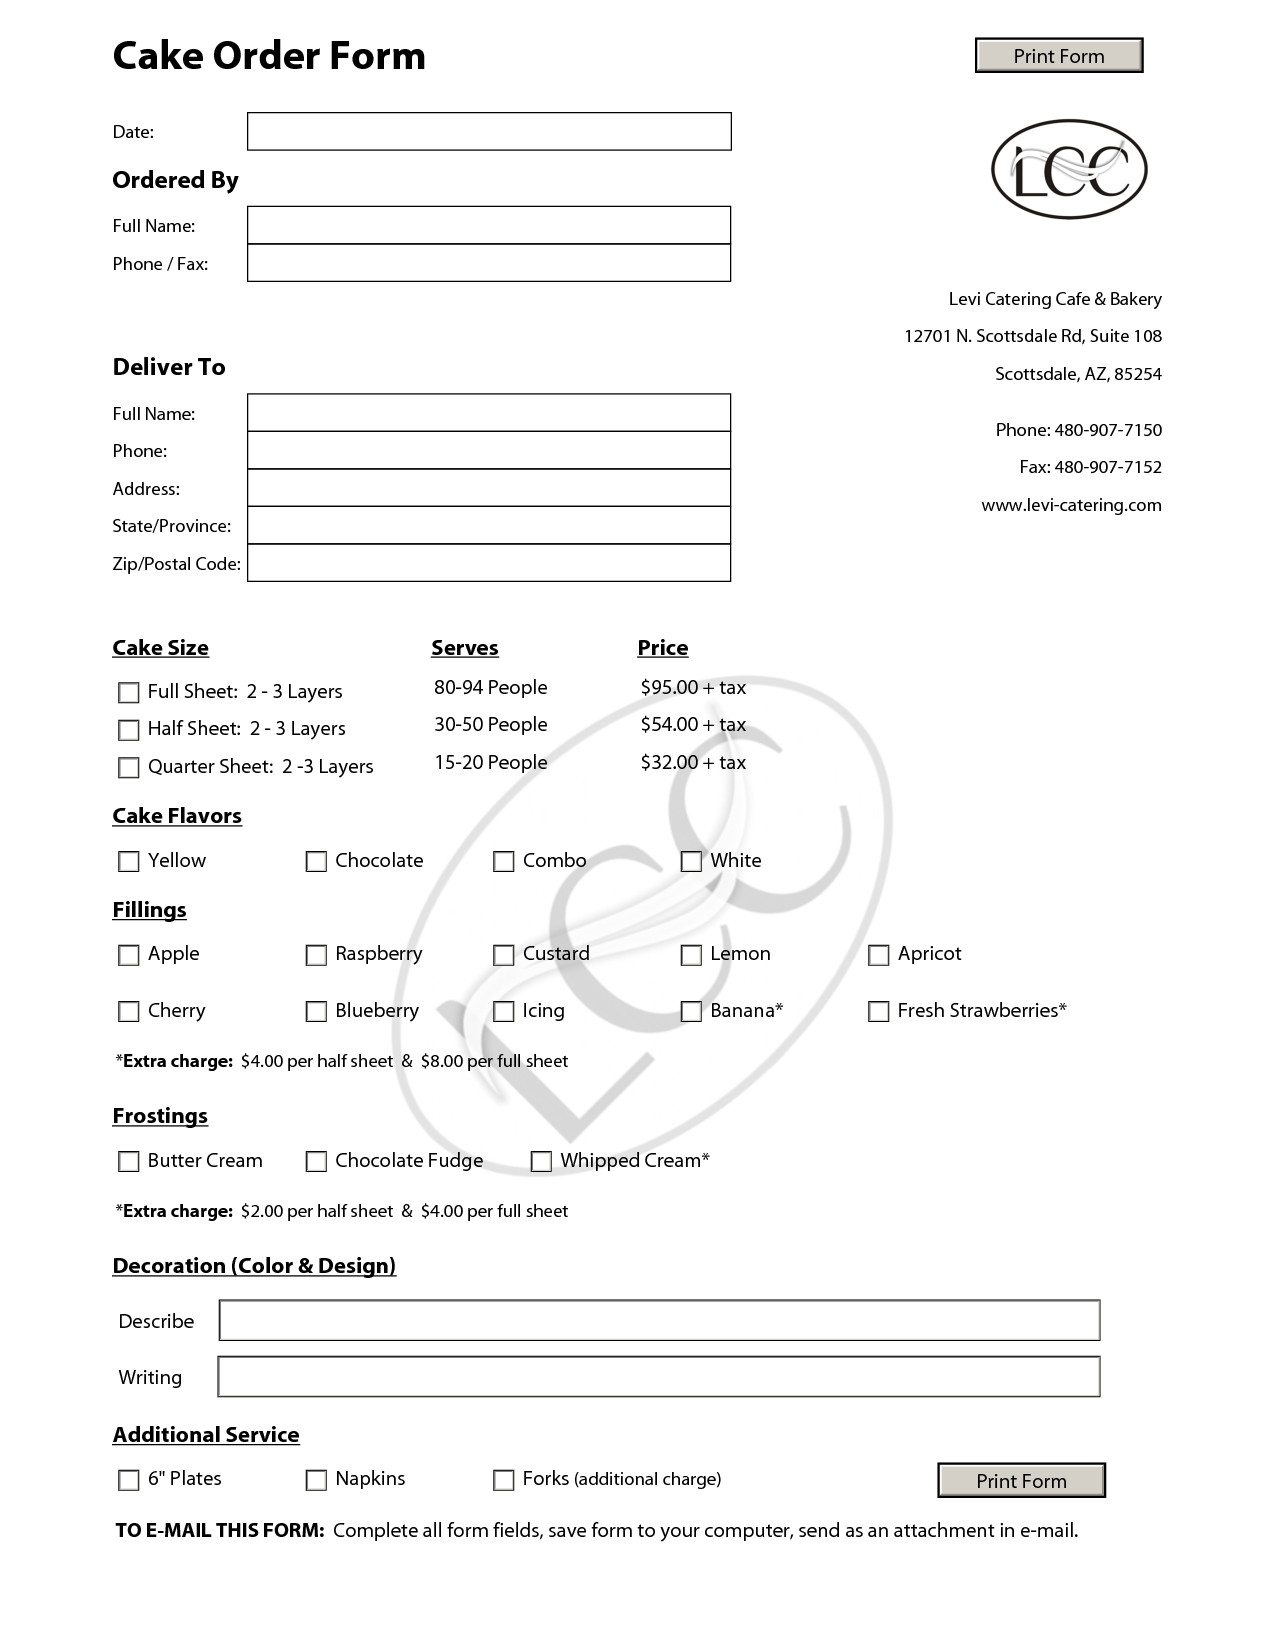 Cake order forms Templates Cake order forms On Pinterest